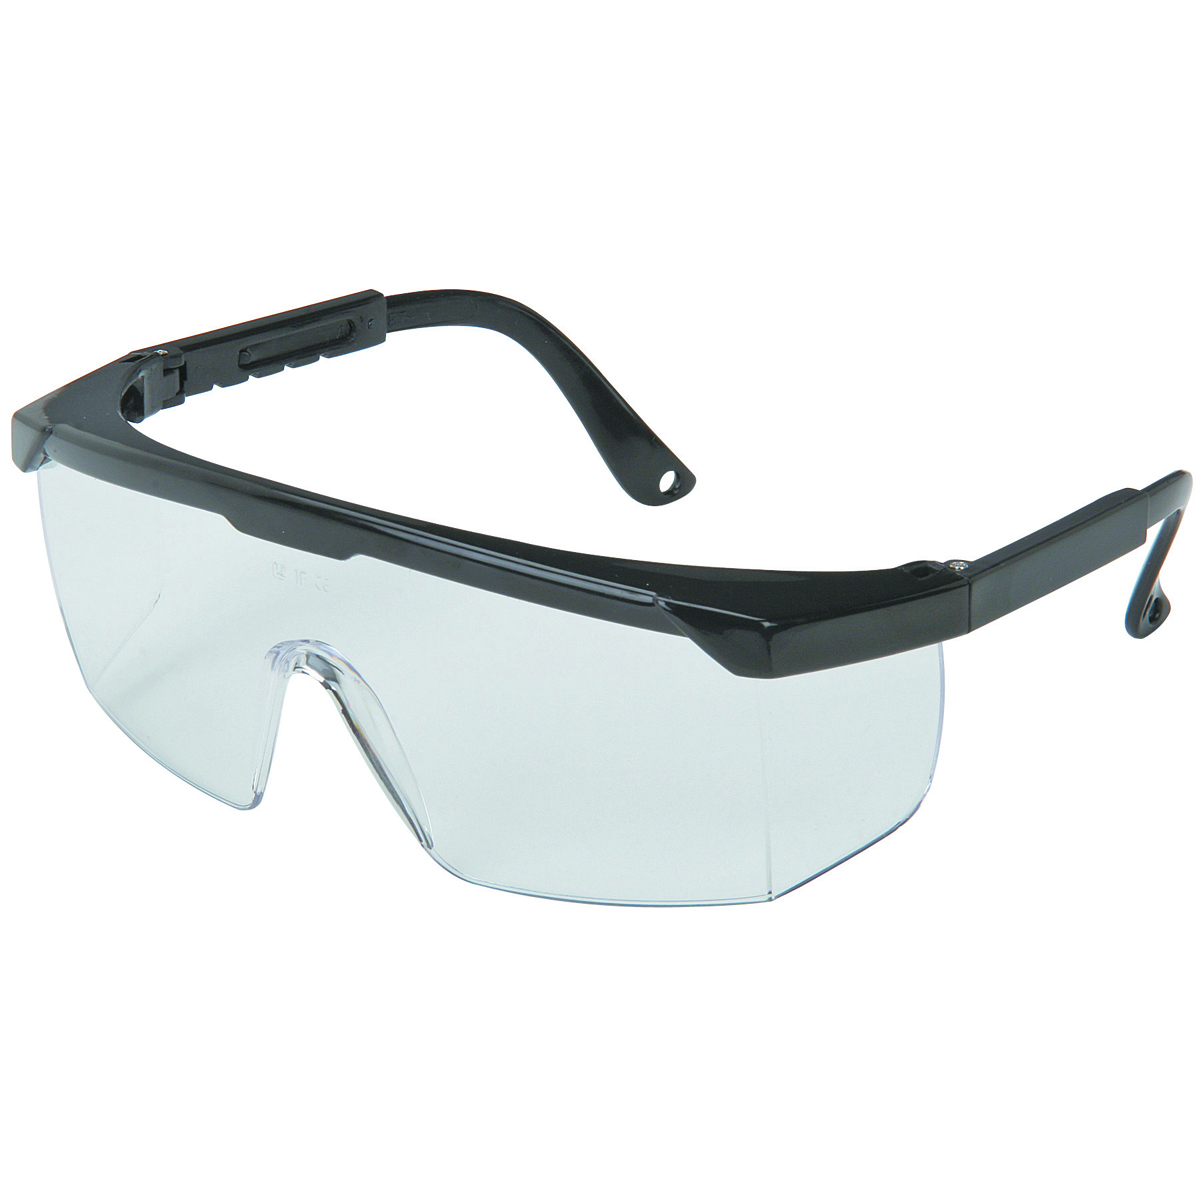 1200x1200 Photos Pics Of Safety Glasses,